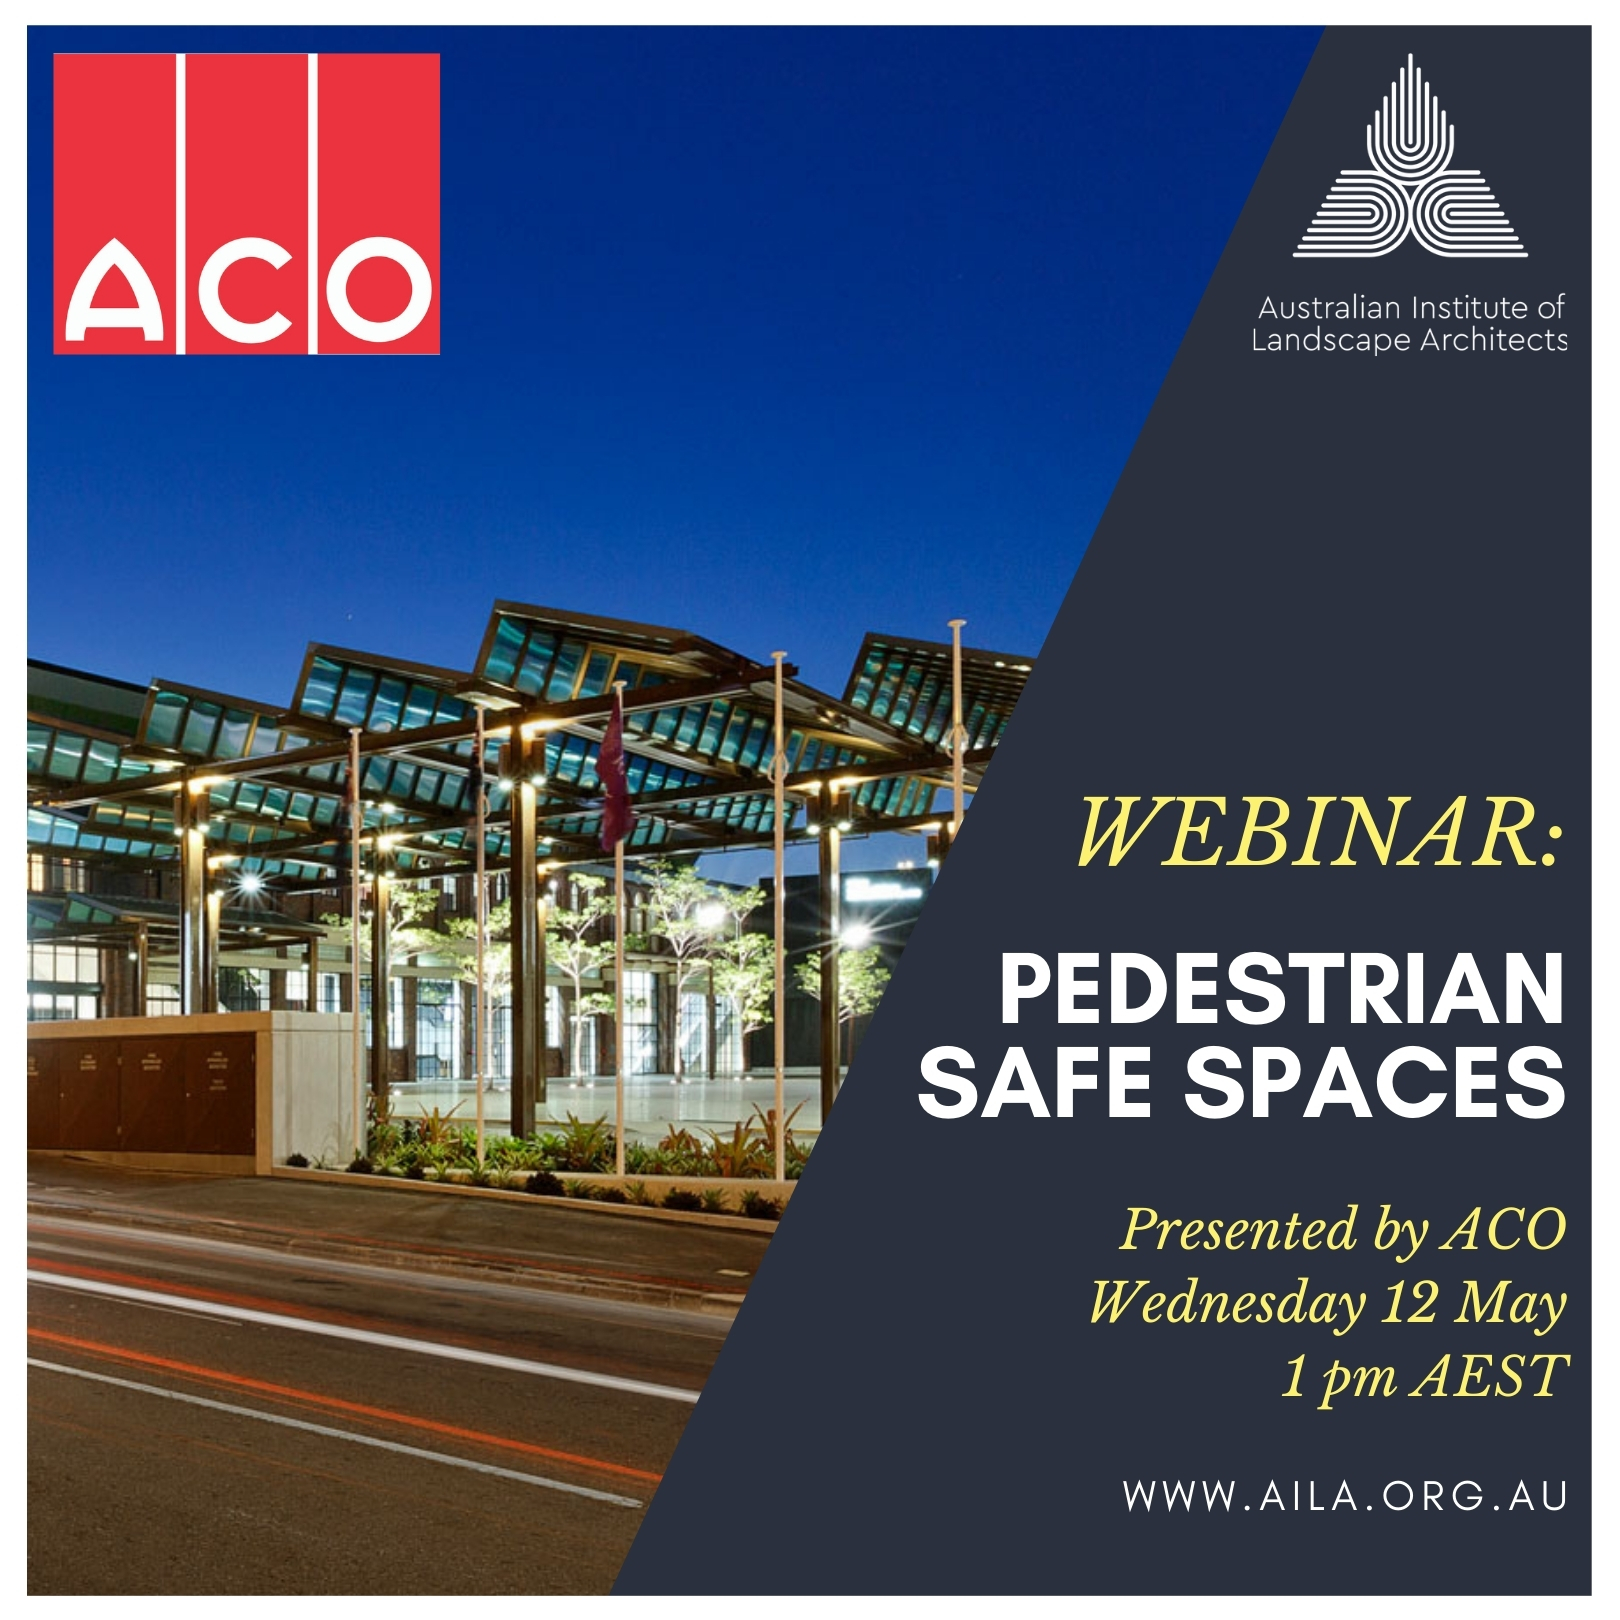 WEBINAR: Pedestrian Safe Spaces